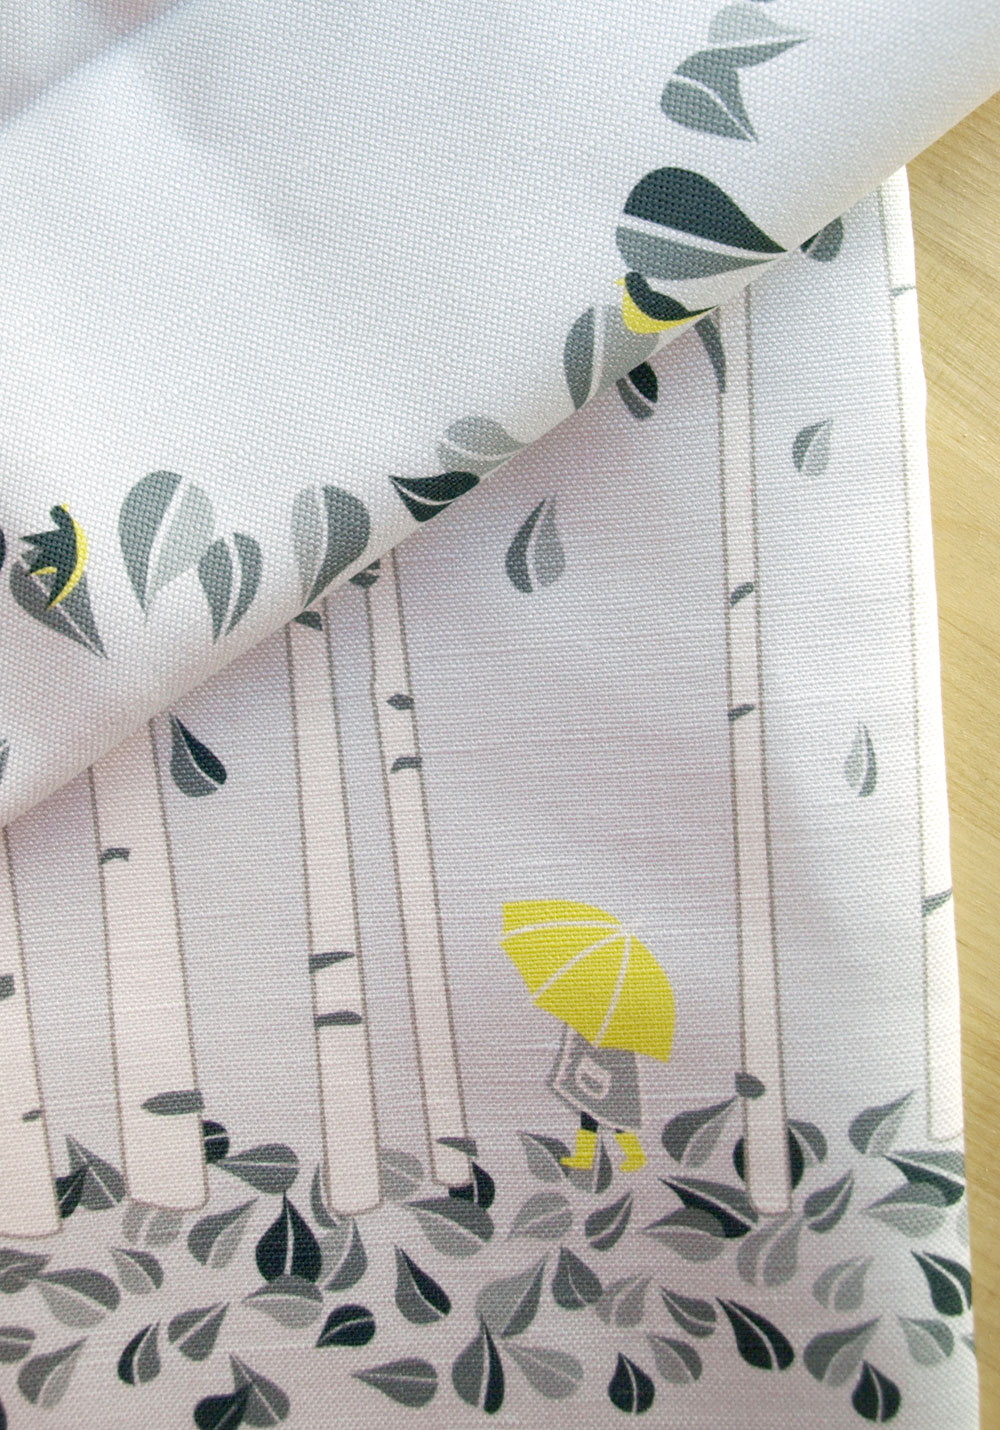 A little recoloring for a custom birch runner. I love yellow and gray together. Thank you, Erin, for the suggestion!